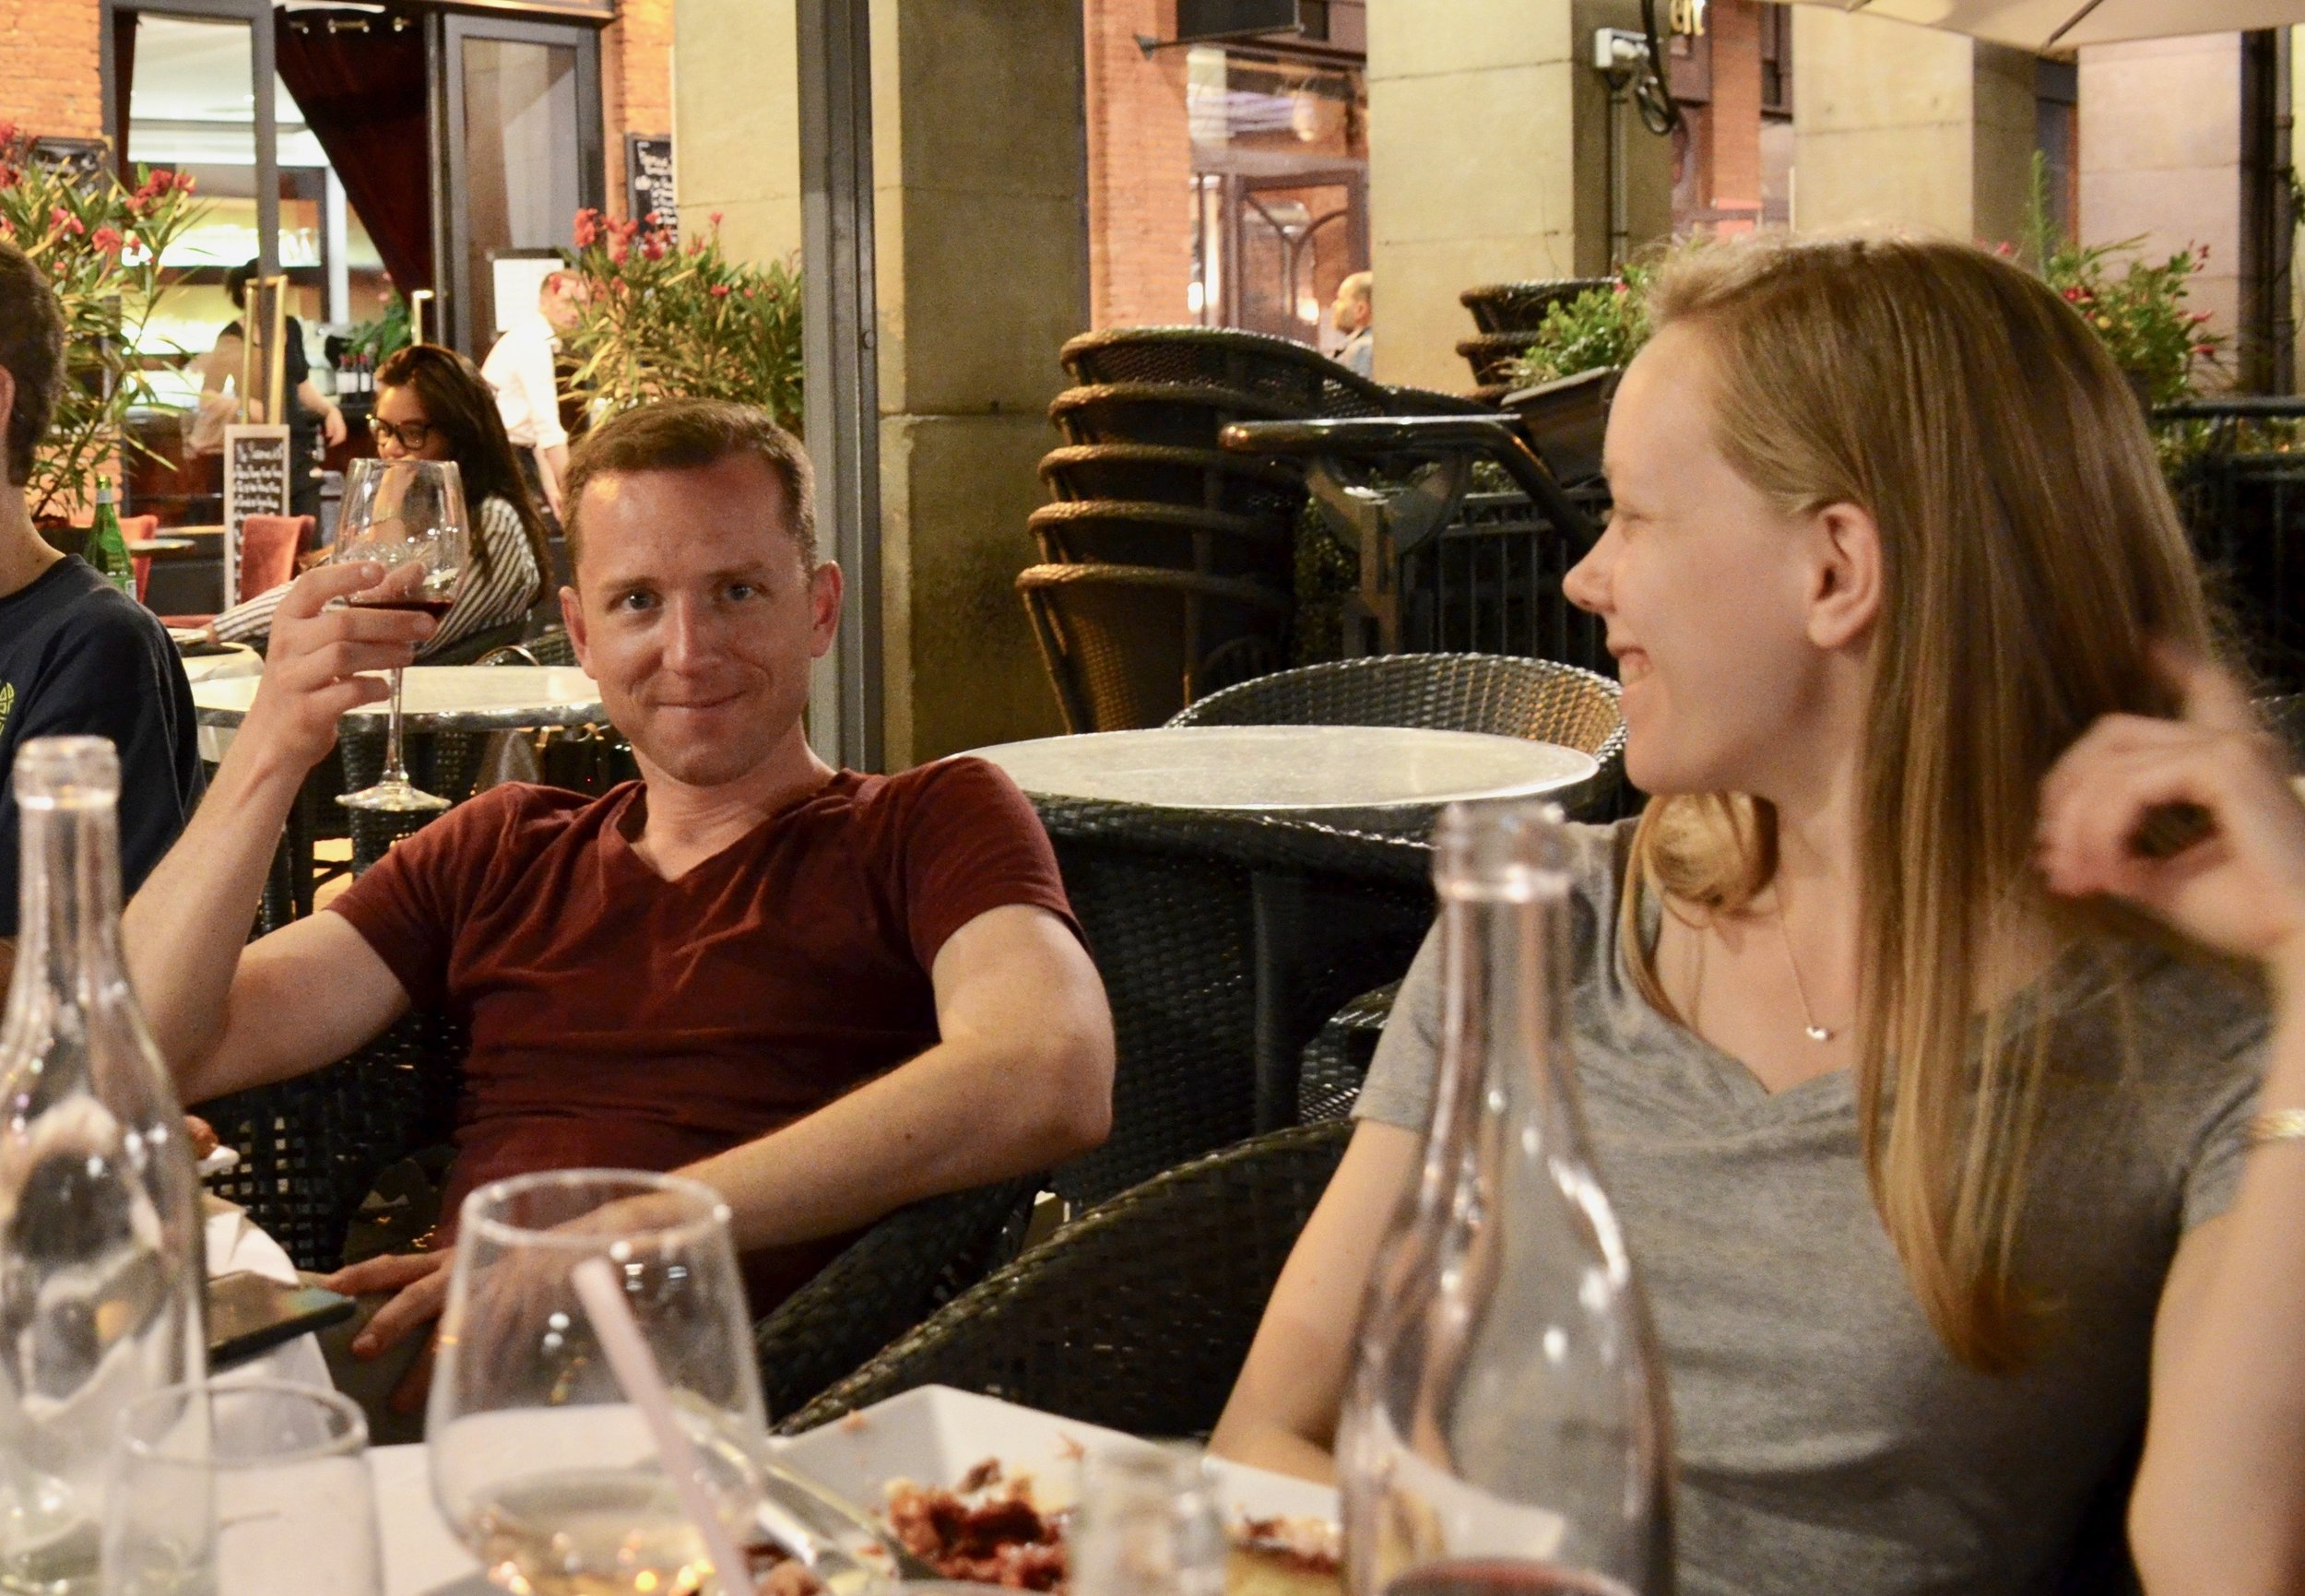 Christian Lane and Laura Gullett enjoying a meal in the square